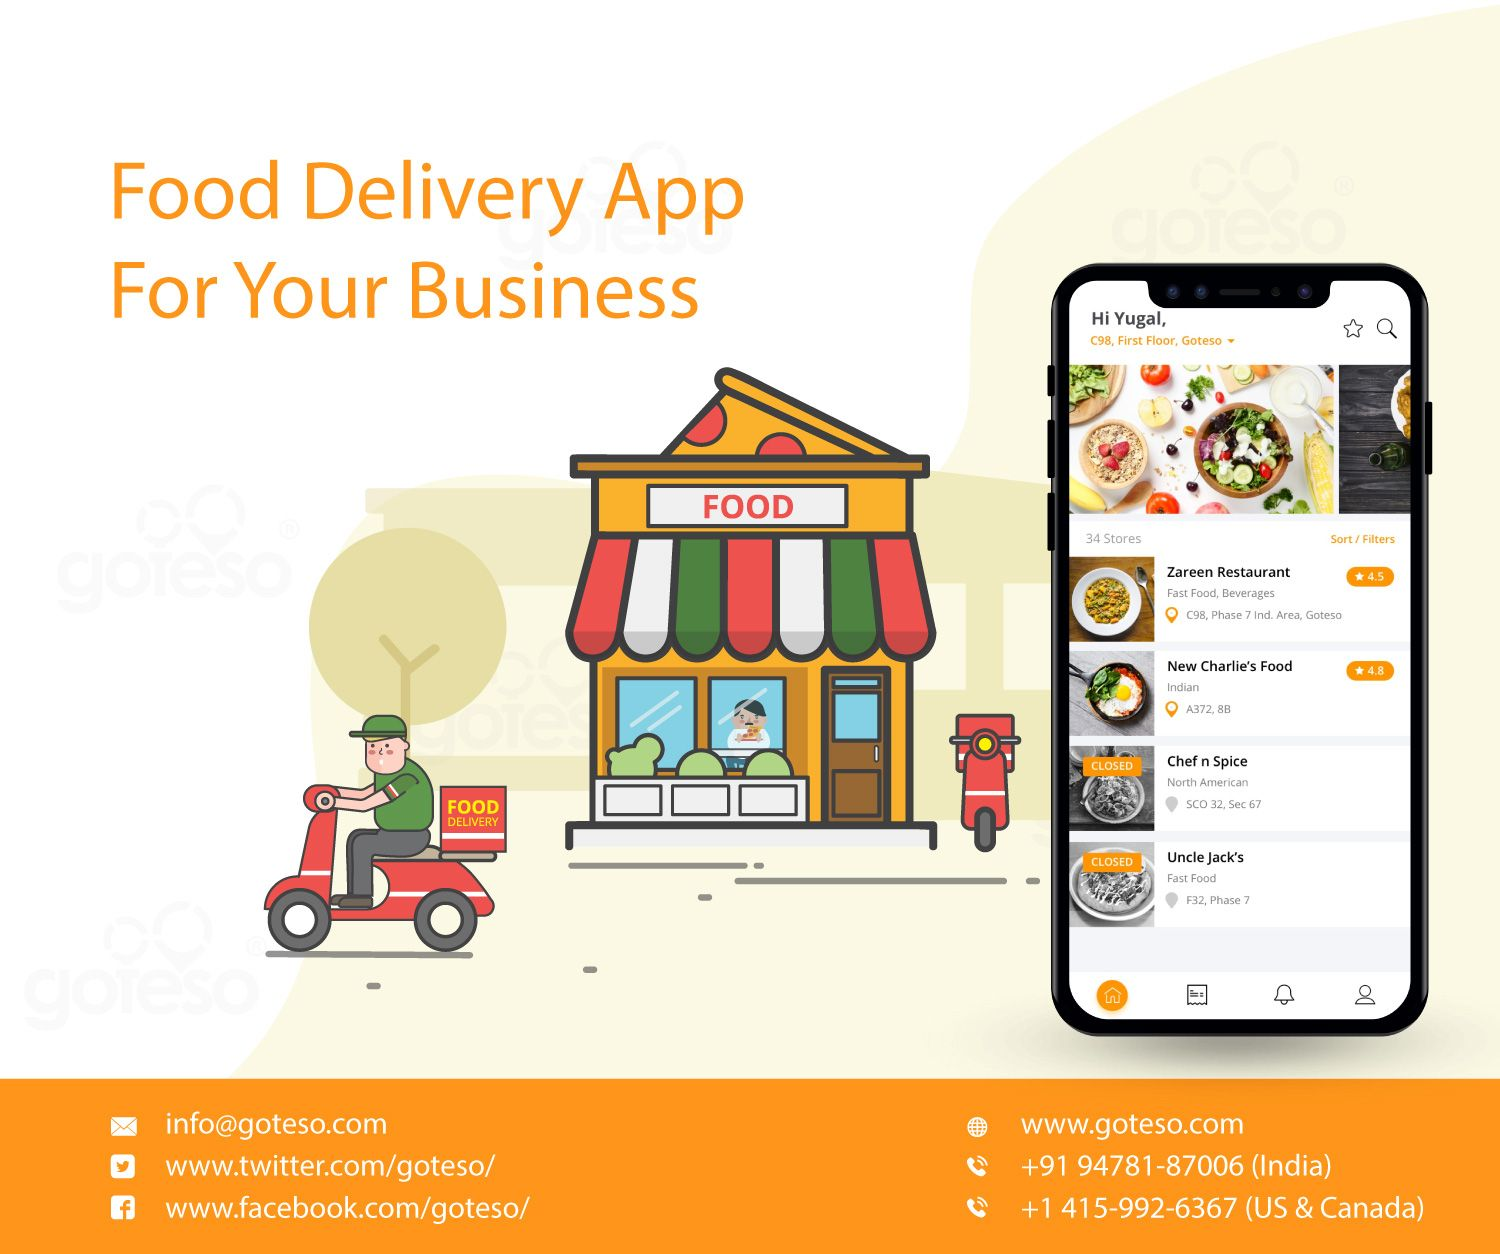 On demand food delivery app development company Goteso